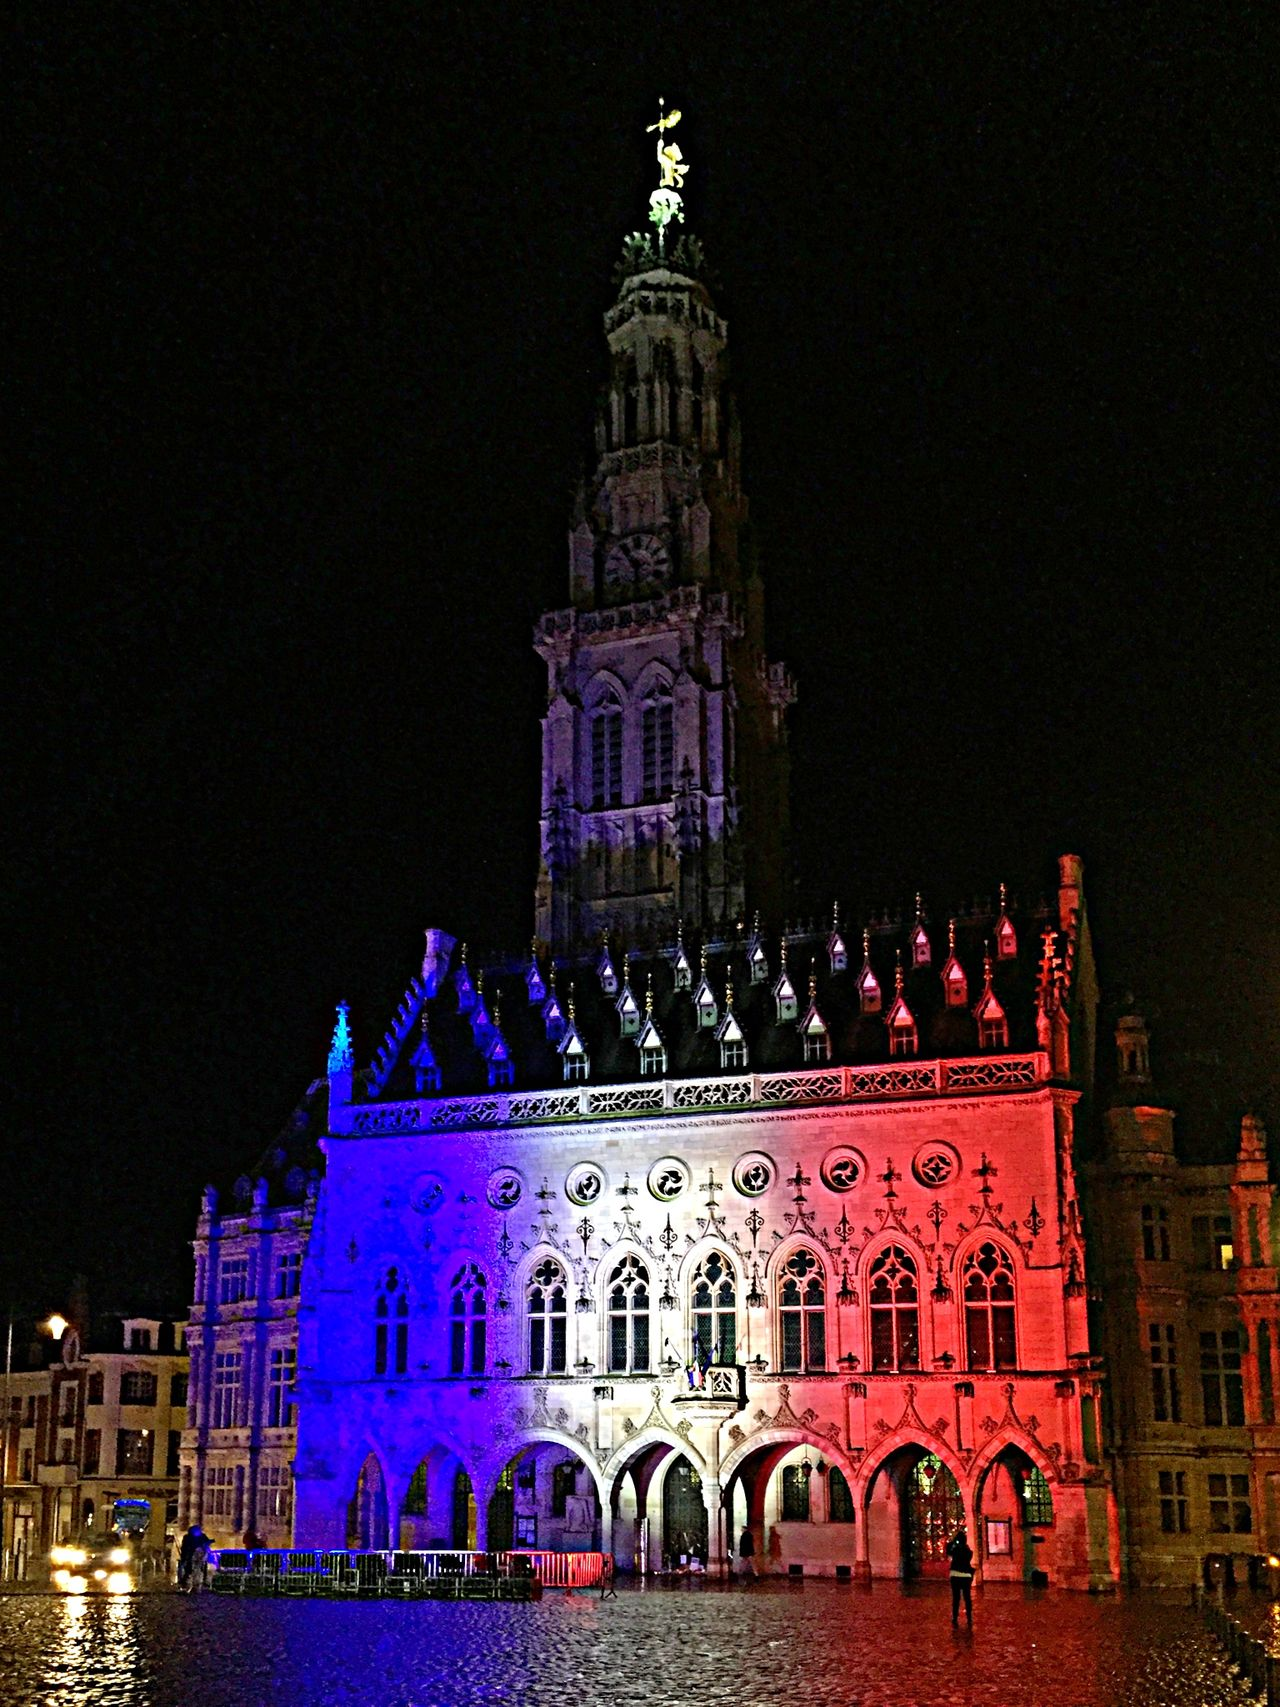 Unilluminated belfry of Arras - Homage to the victims of attacks in Paris - Je suis Paris JesuisParis Jesuisparis❤️ Je Suis Paris Je Suis France/Paris Je Suis France